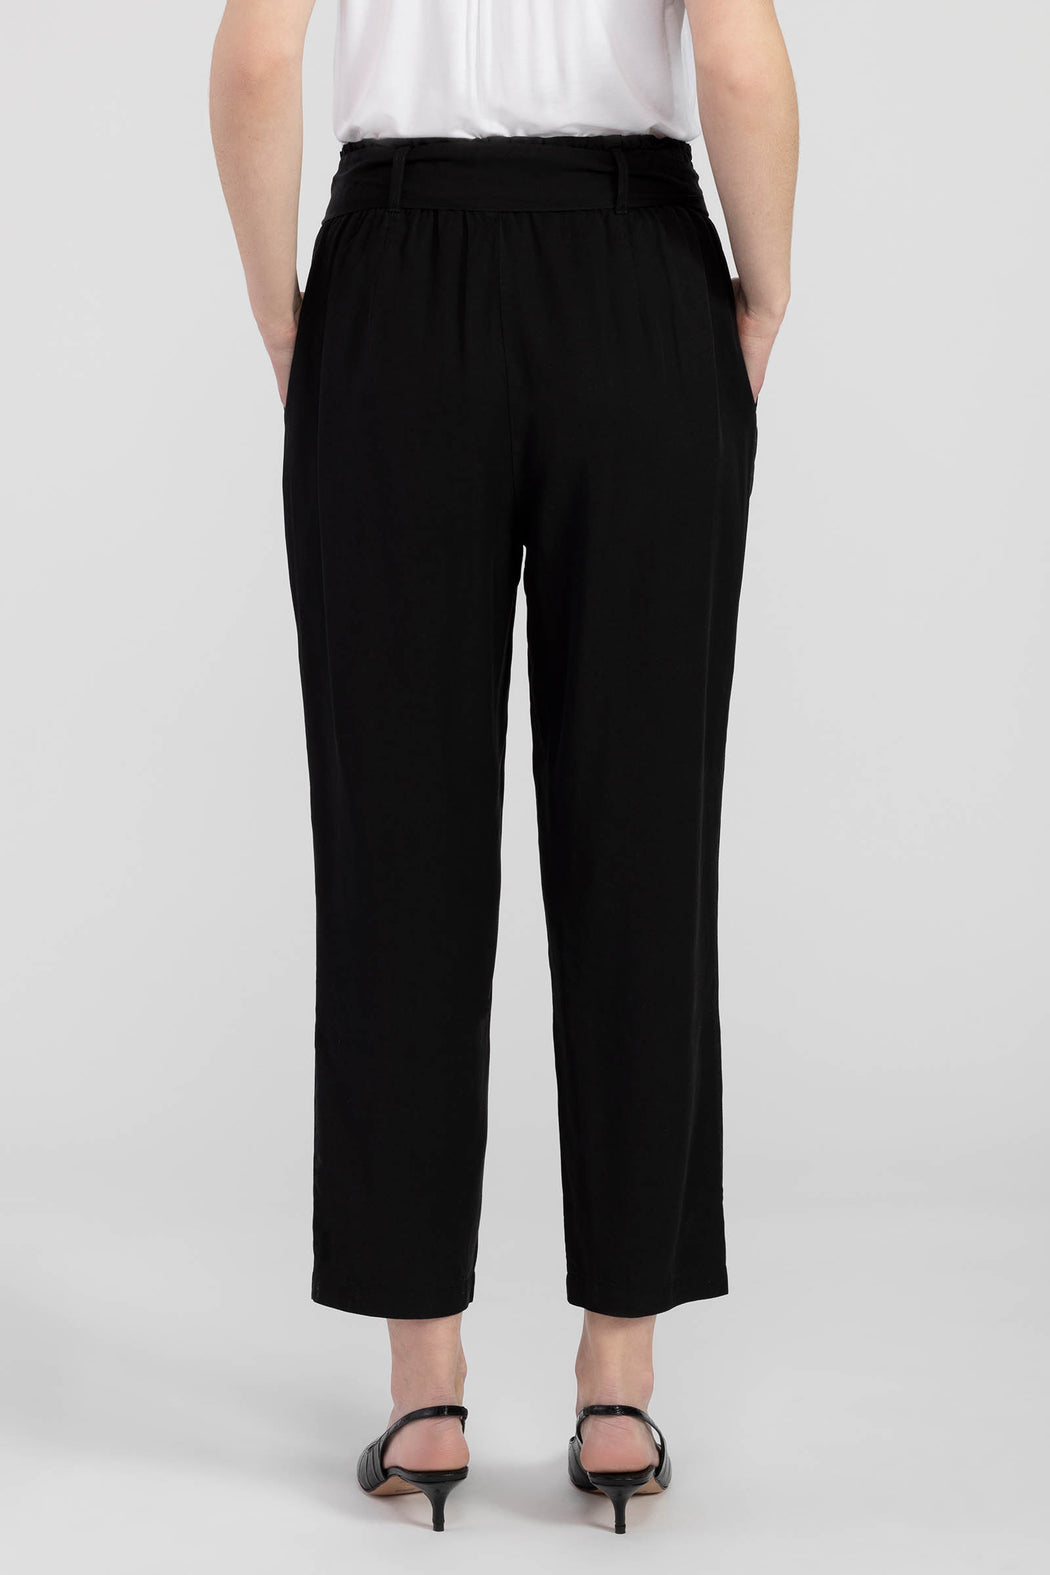 Accent your figure in all the right ways with our black paper bag waist pant! With a tie belt that cinches and flatters, these full-length bottoms are soft to the touch and extra comfy.